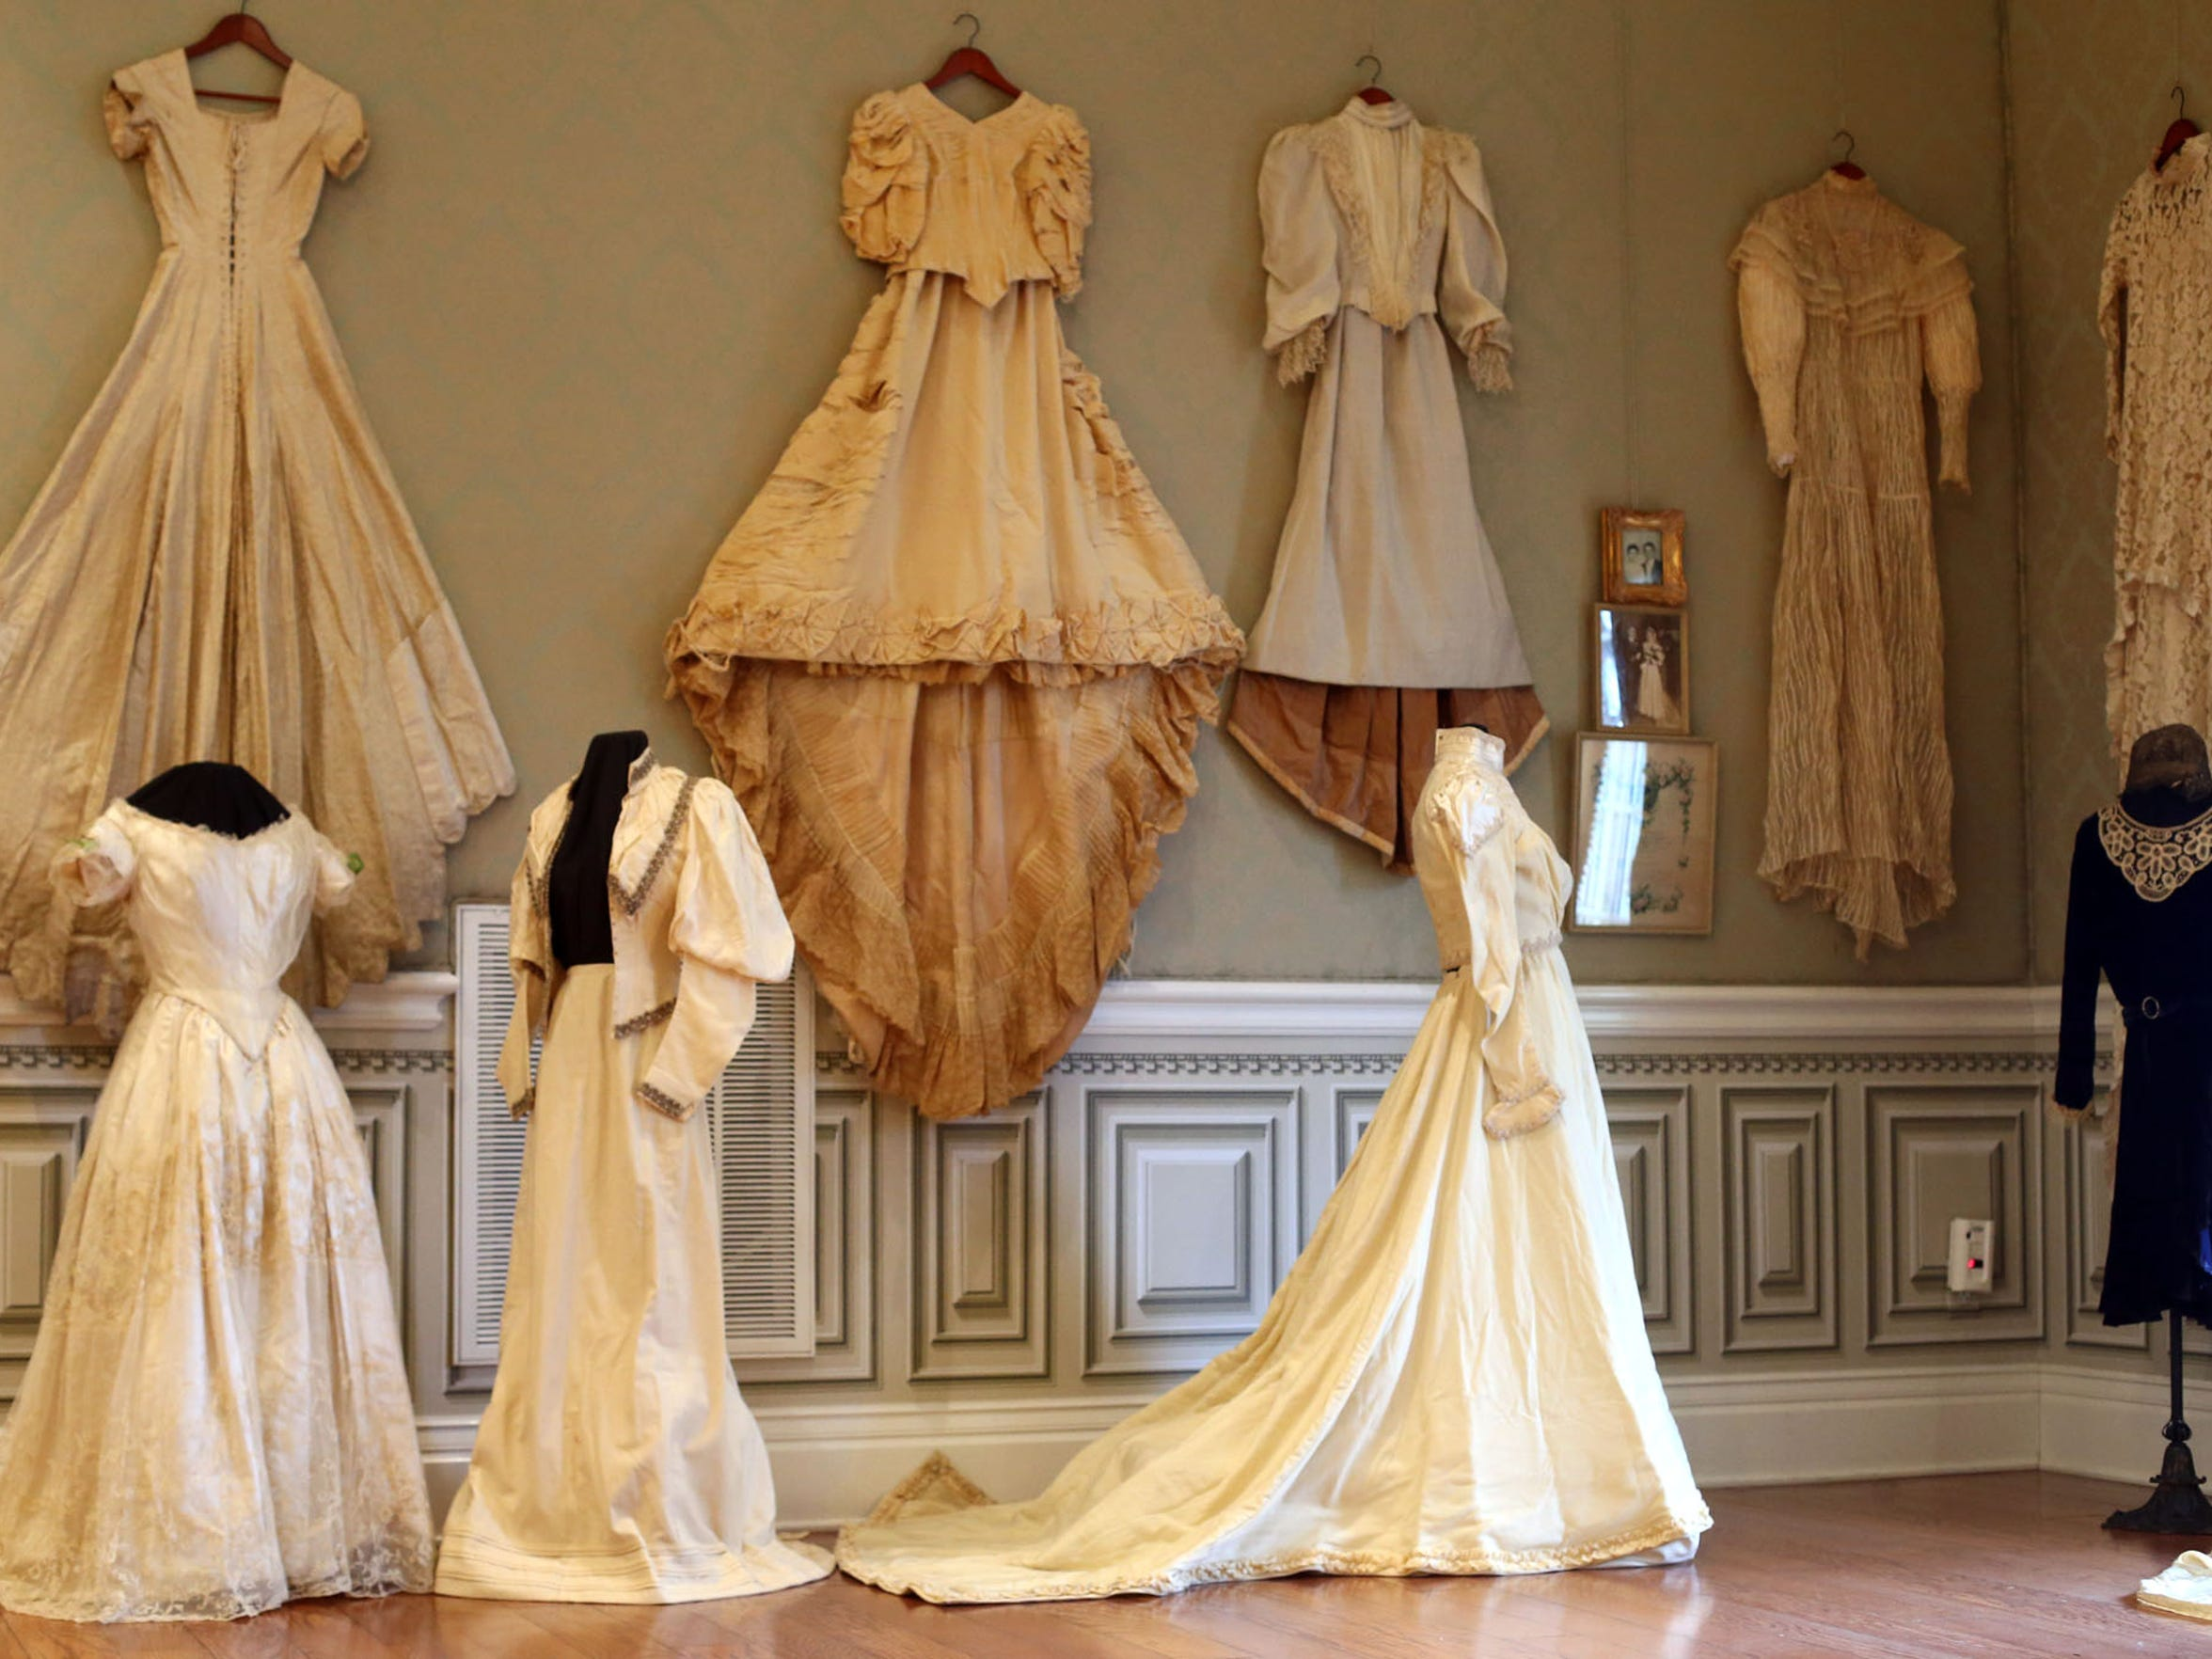 """THROUGH SUNDAY: Oaklands Mansion, 900 N. Maney Ave. in Murfreesboro, presents the annual """"Wedding Dresses Through the Decades"""" on exhibit Jan. 21 through March 5. Vintage gowns from the past 100 years will be on display, including Barbara Mandrell's 1967 gown which was handmade by her mother, and the white naval uniform worn by her husband, Ken Dudney. Admission: $10 and museum tours are available at regular rates during regular museum hours and combination tickets for the exhibition and house tours are available at a reduced rate. For more information, contact Mary Beth Nevills at Oaklands 615-893-0022 or email mb@oaklandsmuseum.org."""